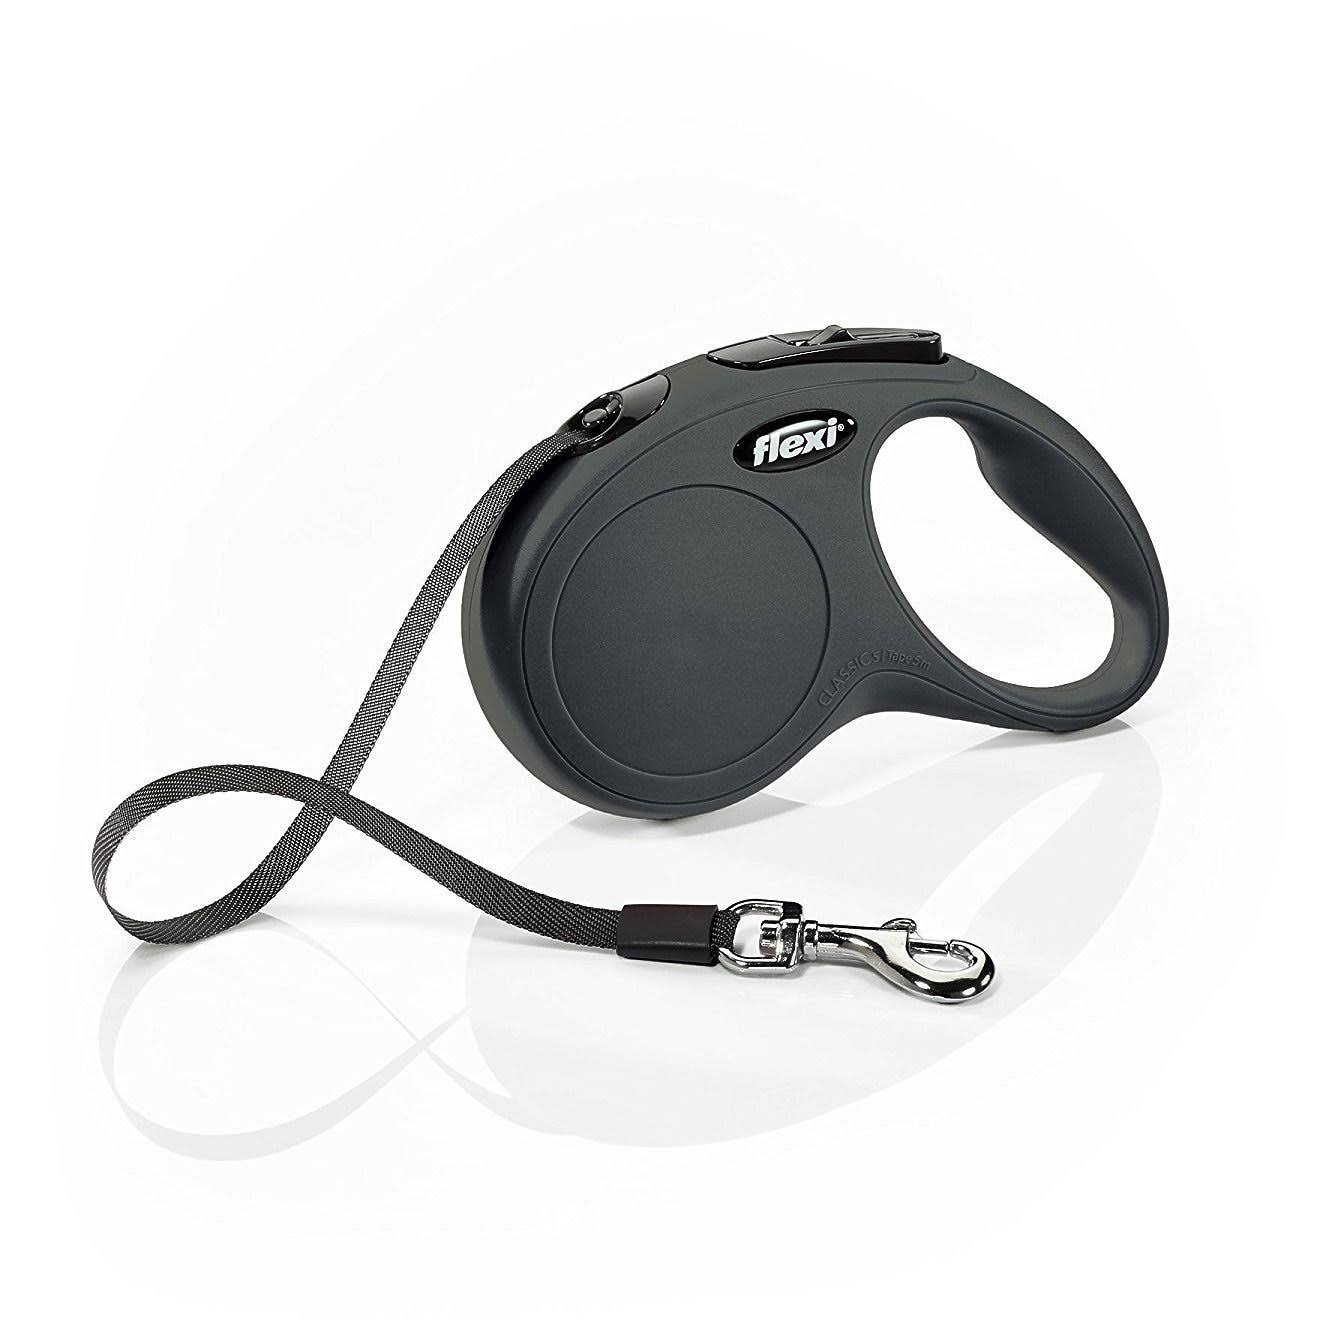 Flexi New Classic Retractable Tape Dog Leash - 16', Black, Small